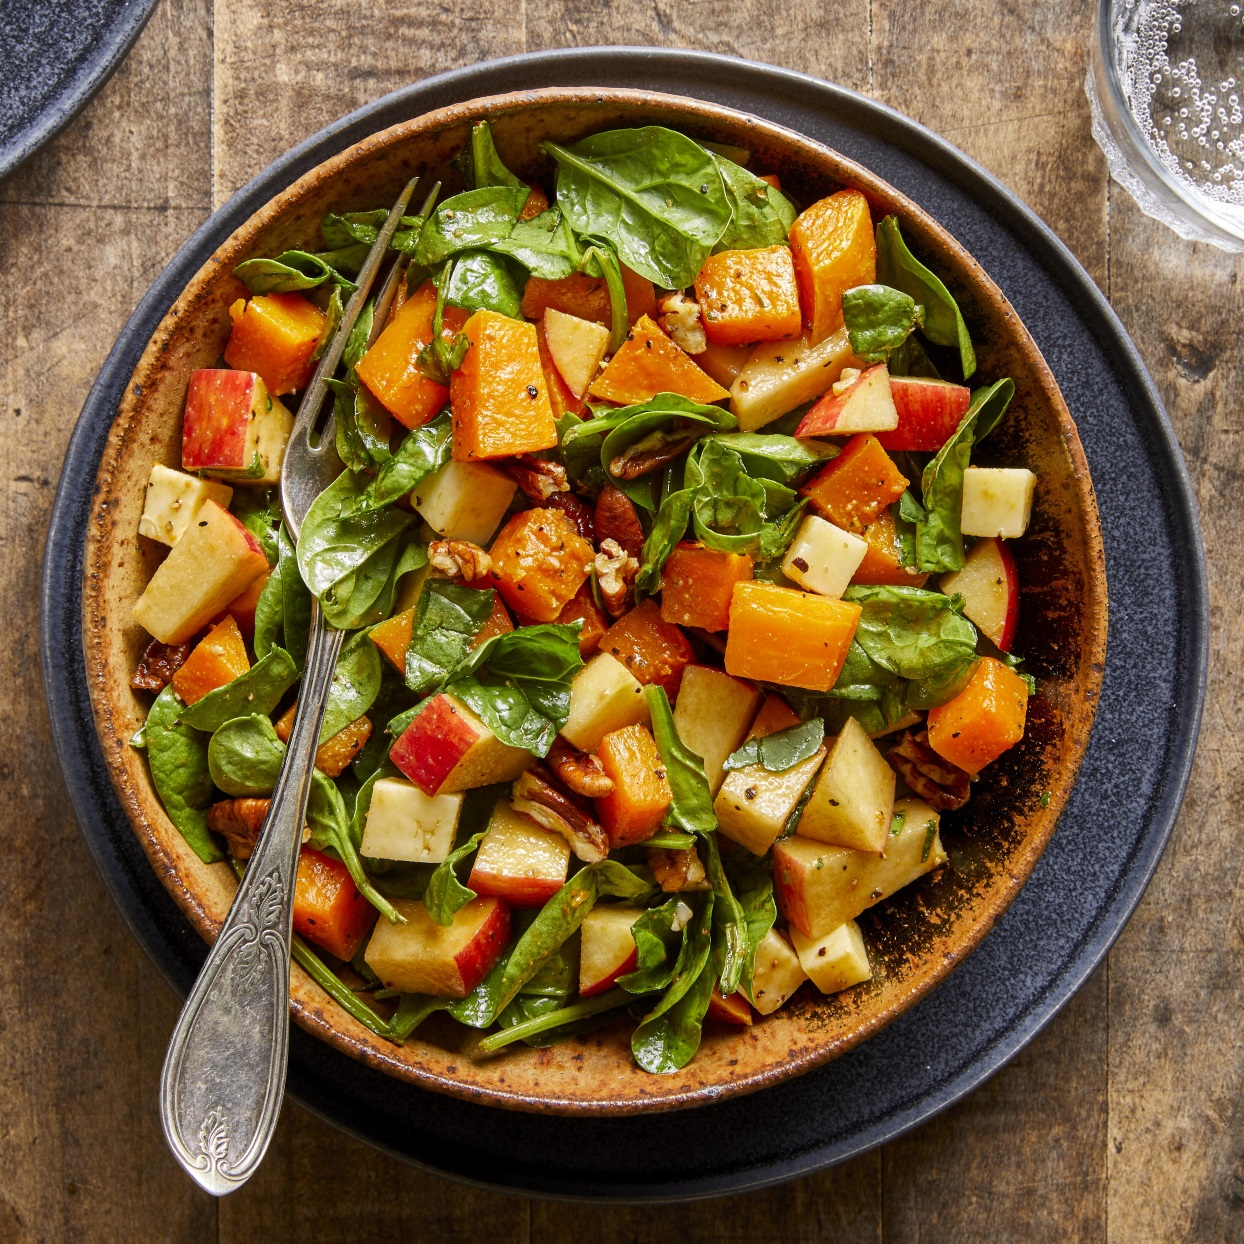 Fall Chopped Salad with Spinach, Butternut Squash, Apples & Cheddar Trusted Brands